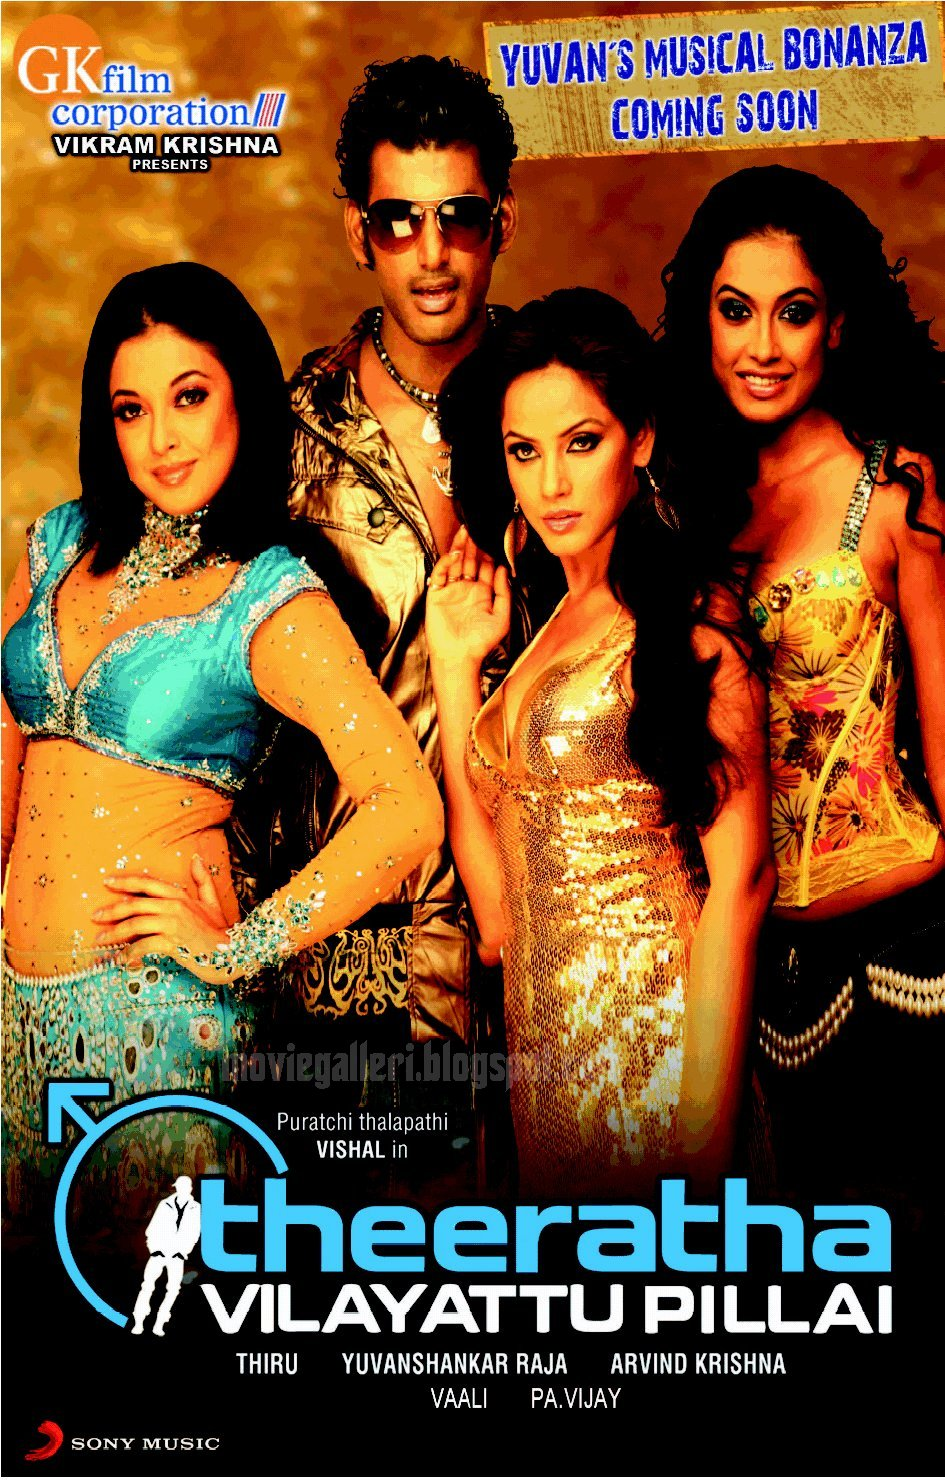 Ek Khiladi Teen Haseenayen (2010) Hindi Dubbed Trailer